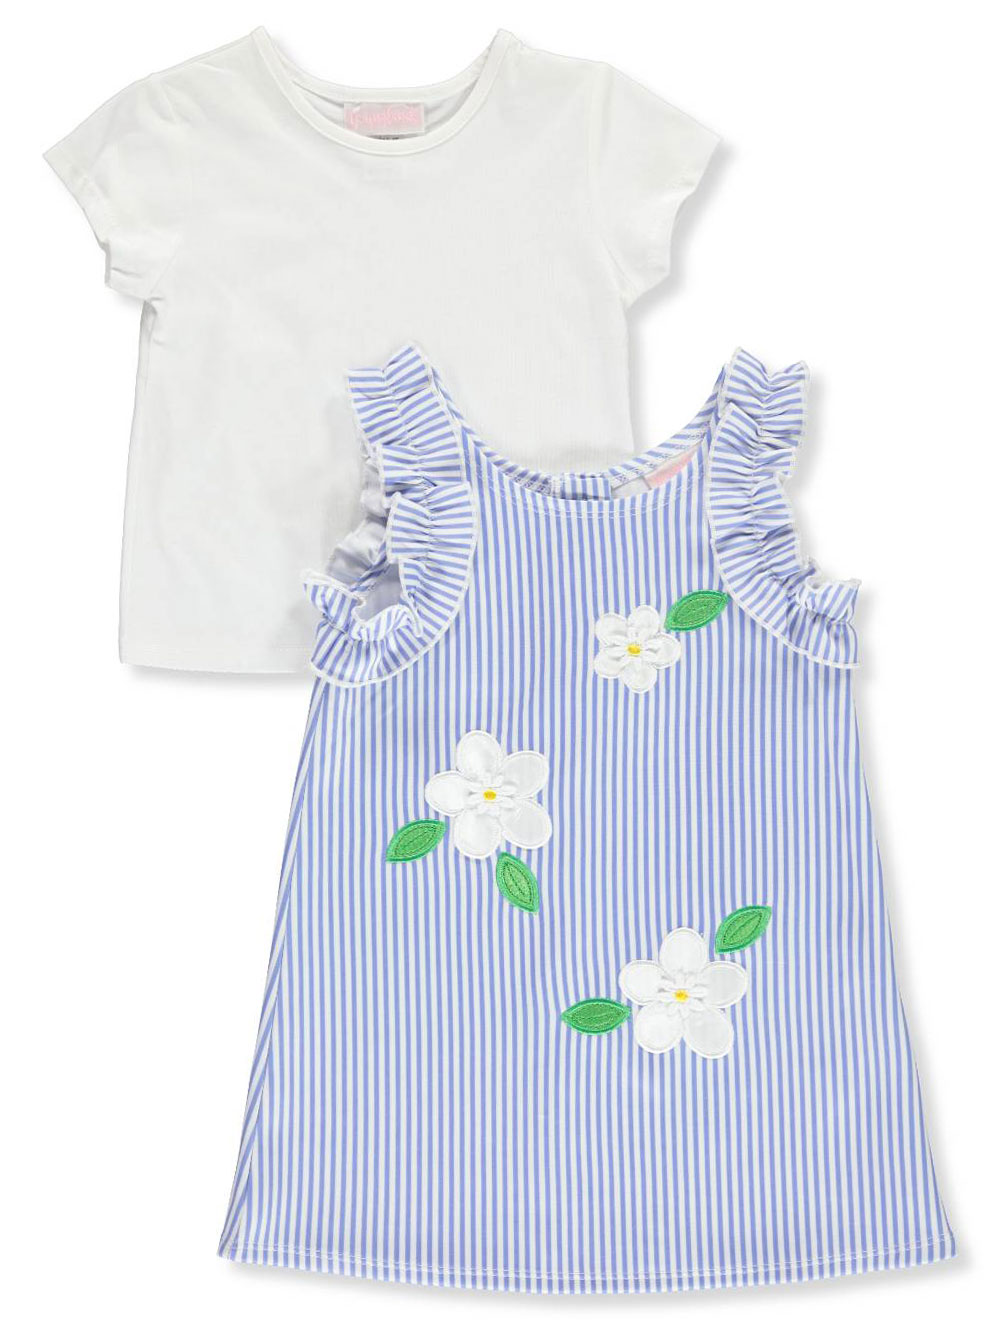 7bf36704f89cf Girls' 2-Piece Dress Set Outfit by Youngland in Flower from Cookie's Kids